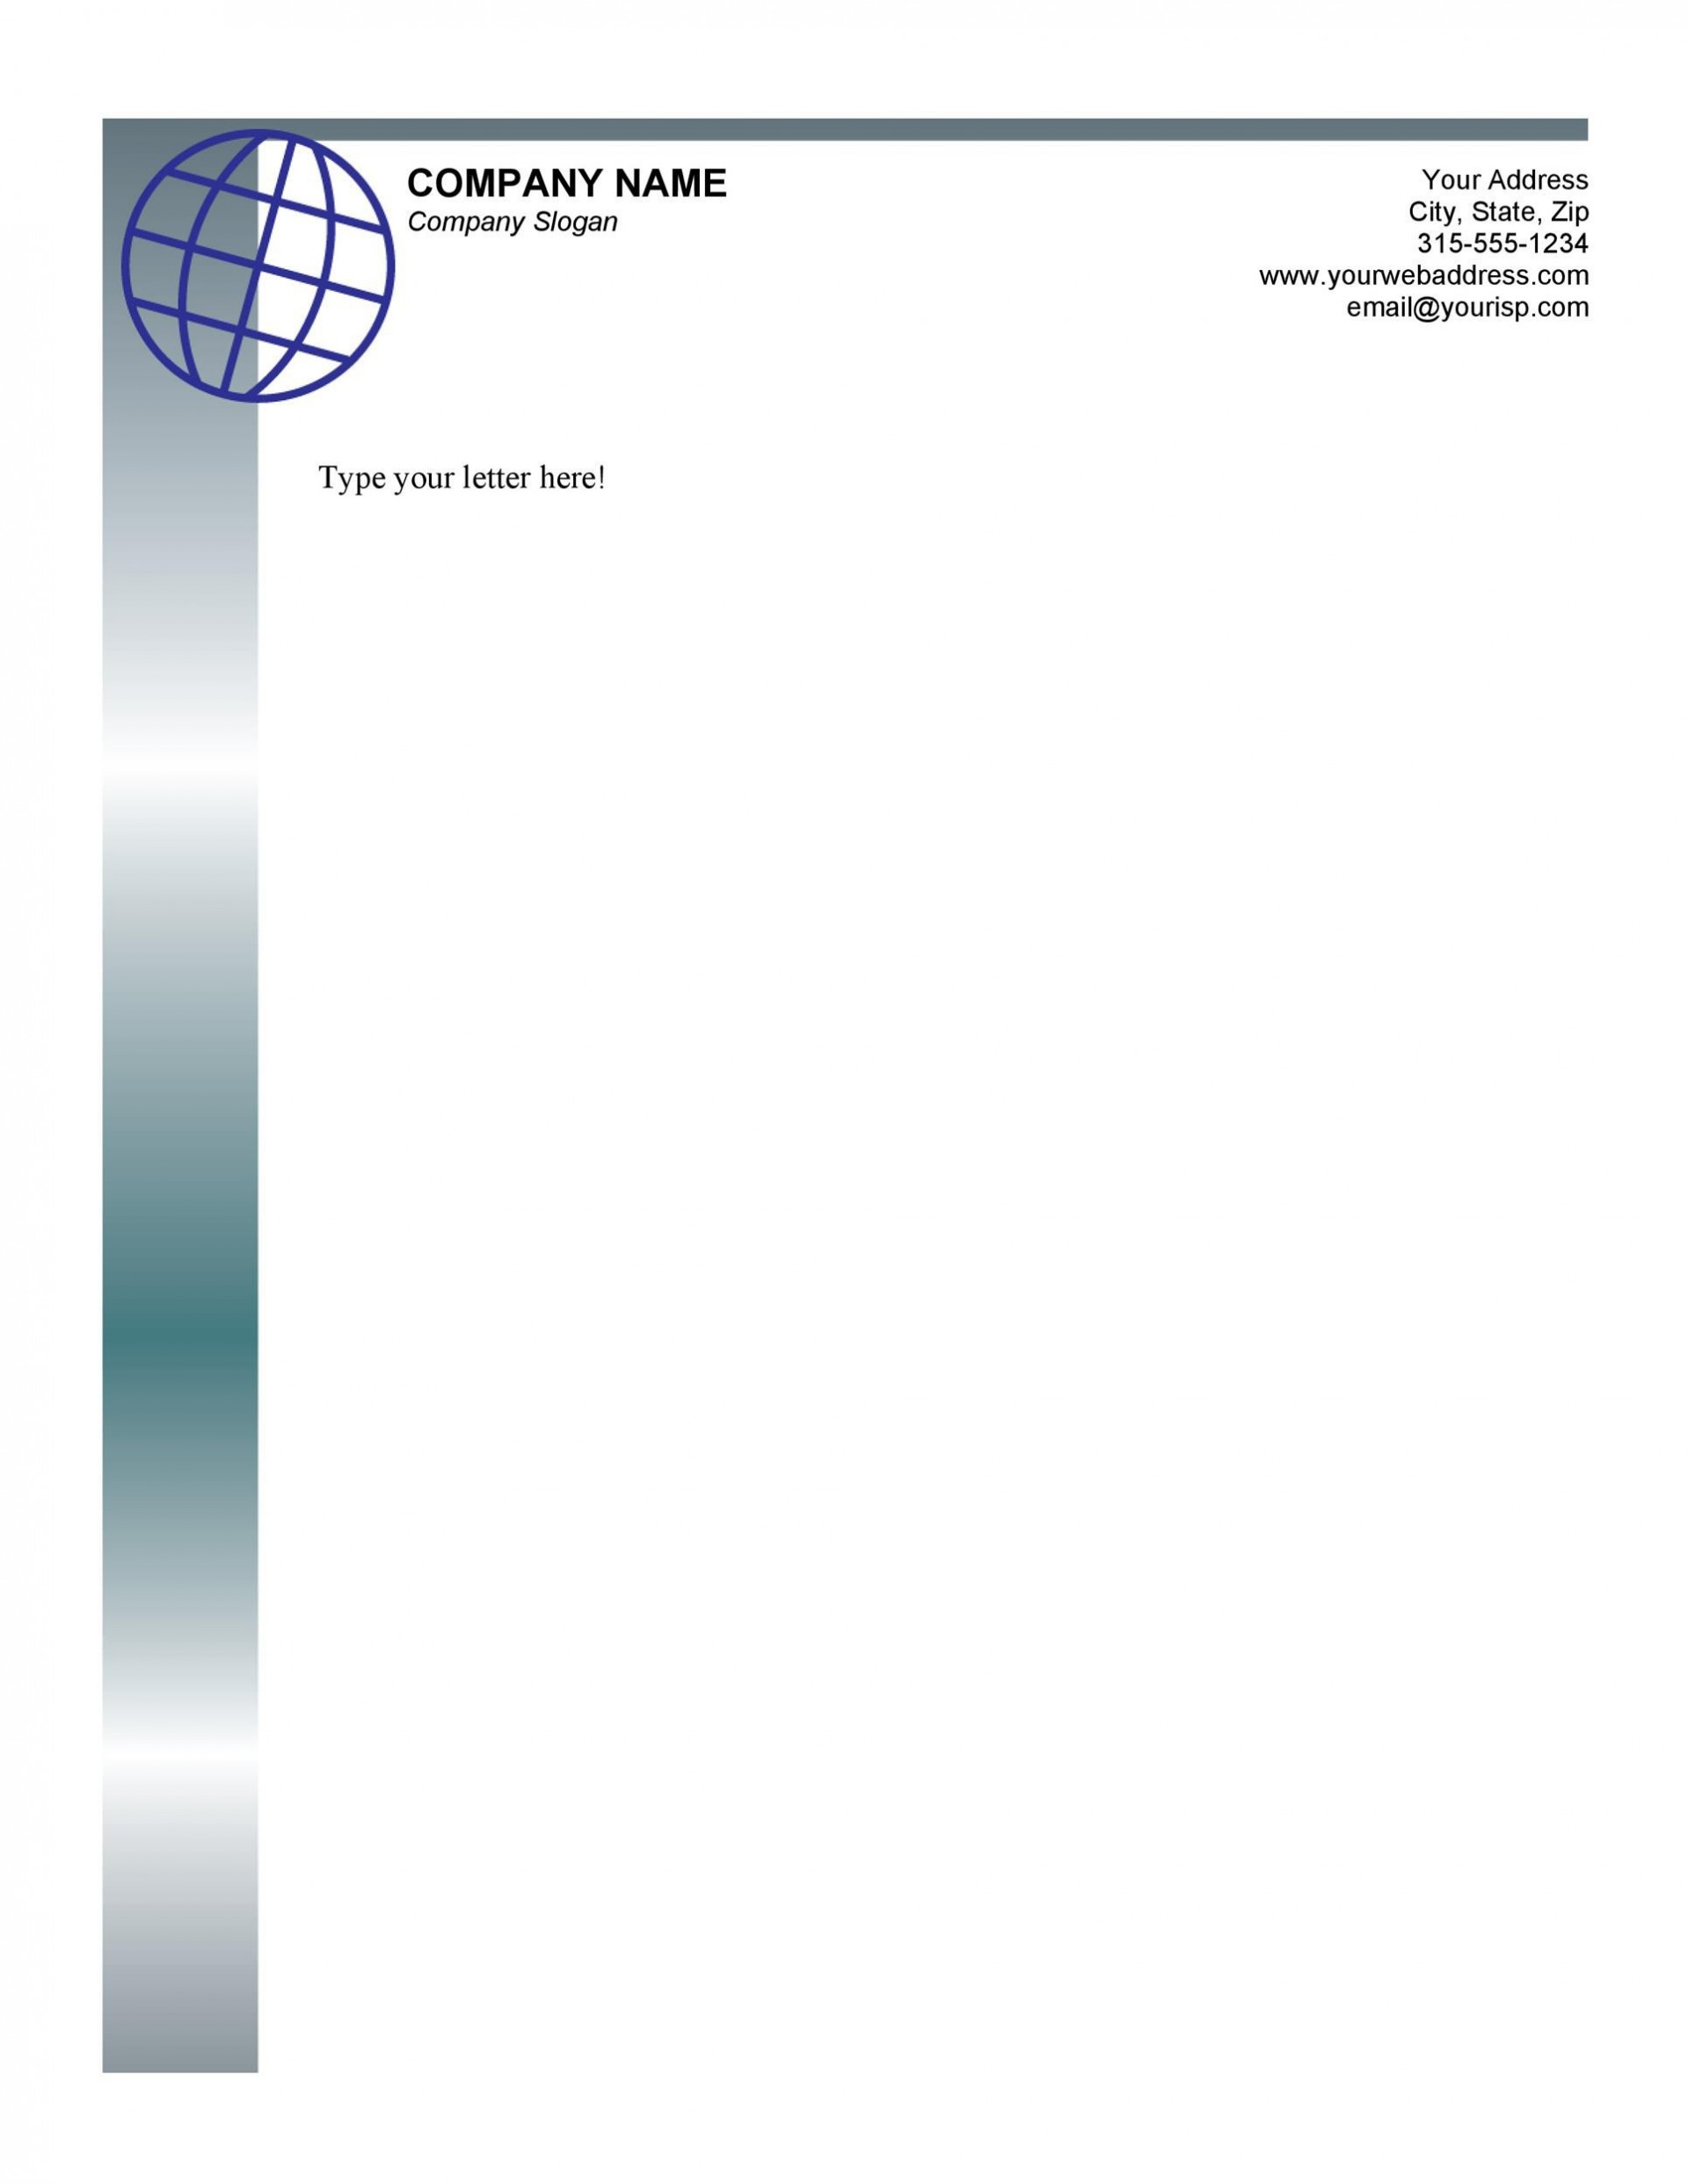 008 Staggering Free Company Letterhead Template Highest Quality  Online Psd Download Word 20071920